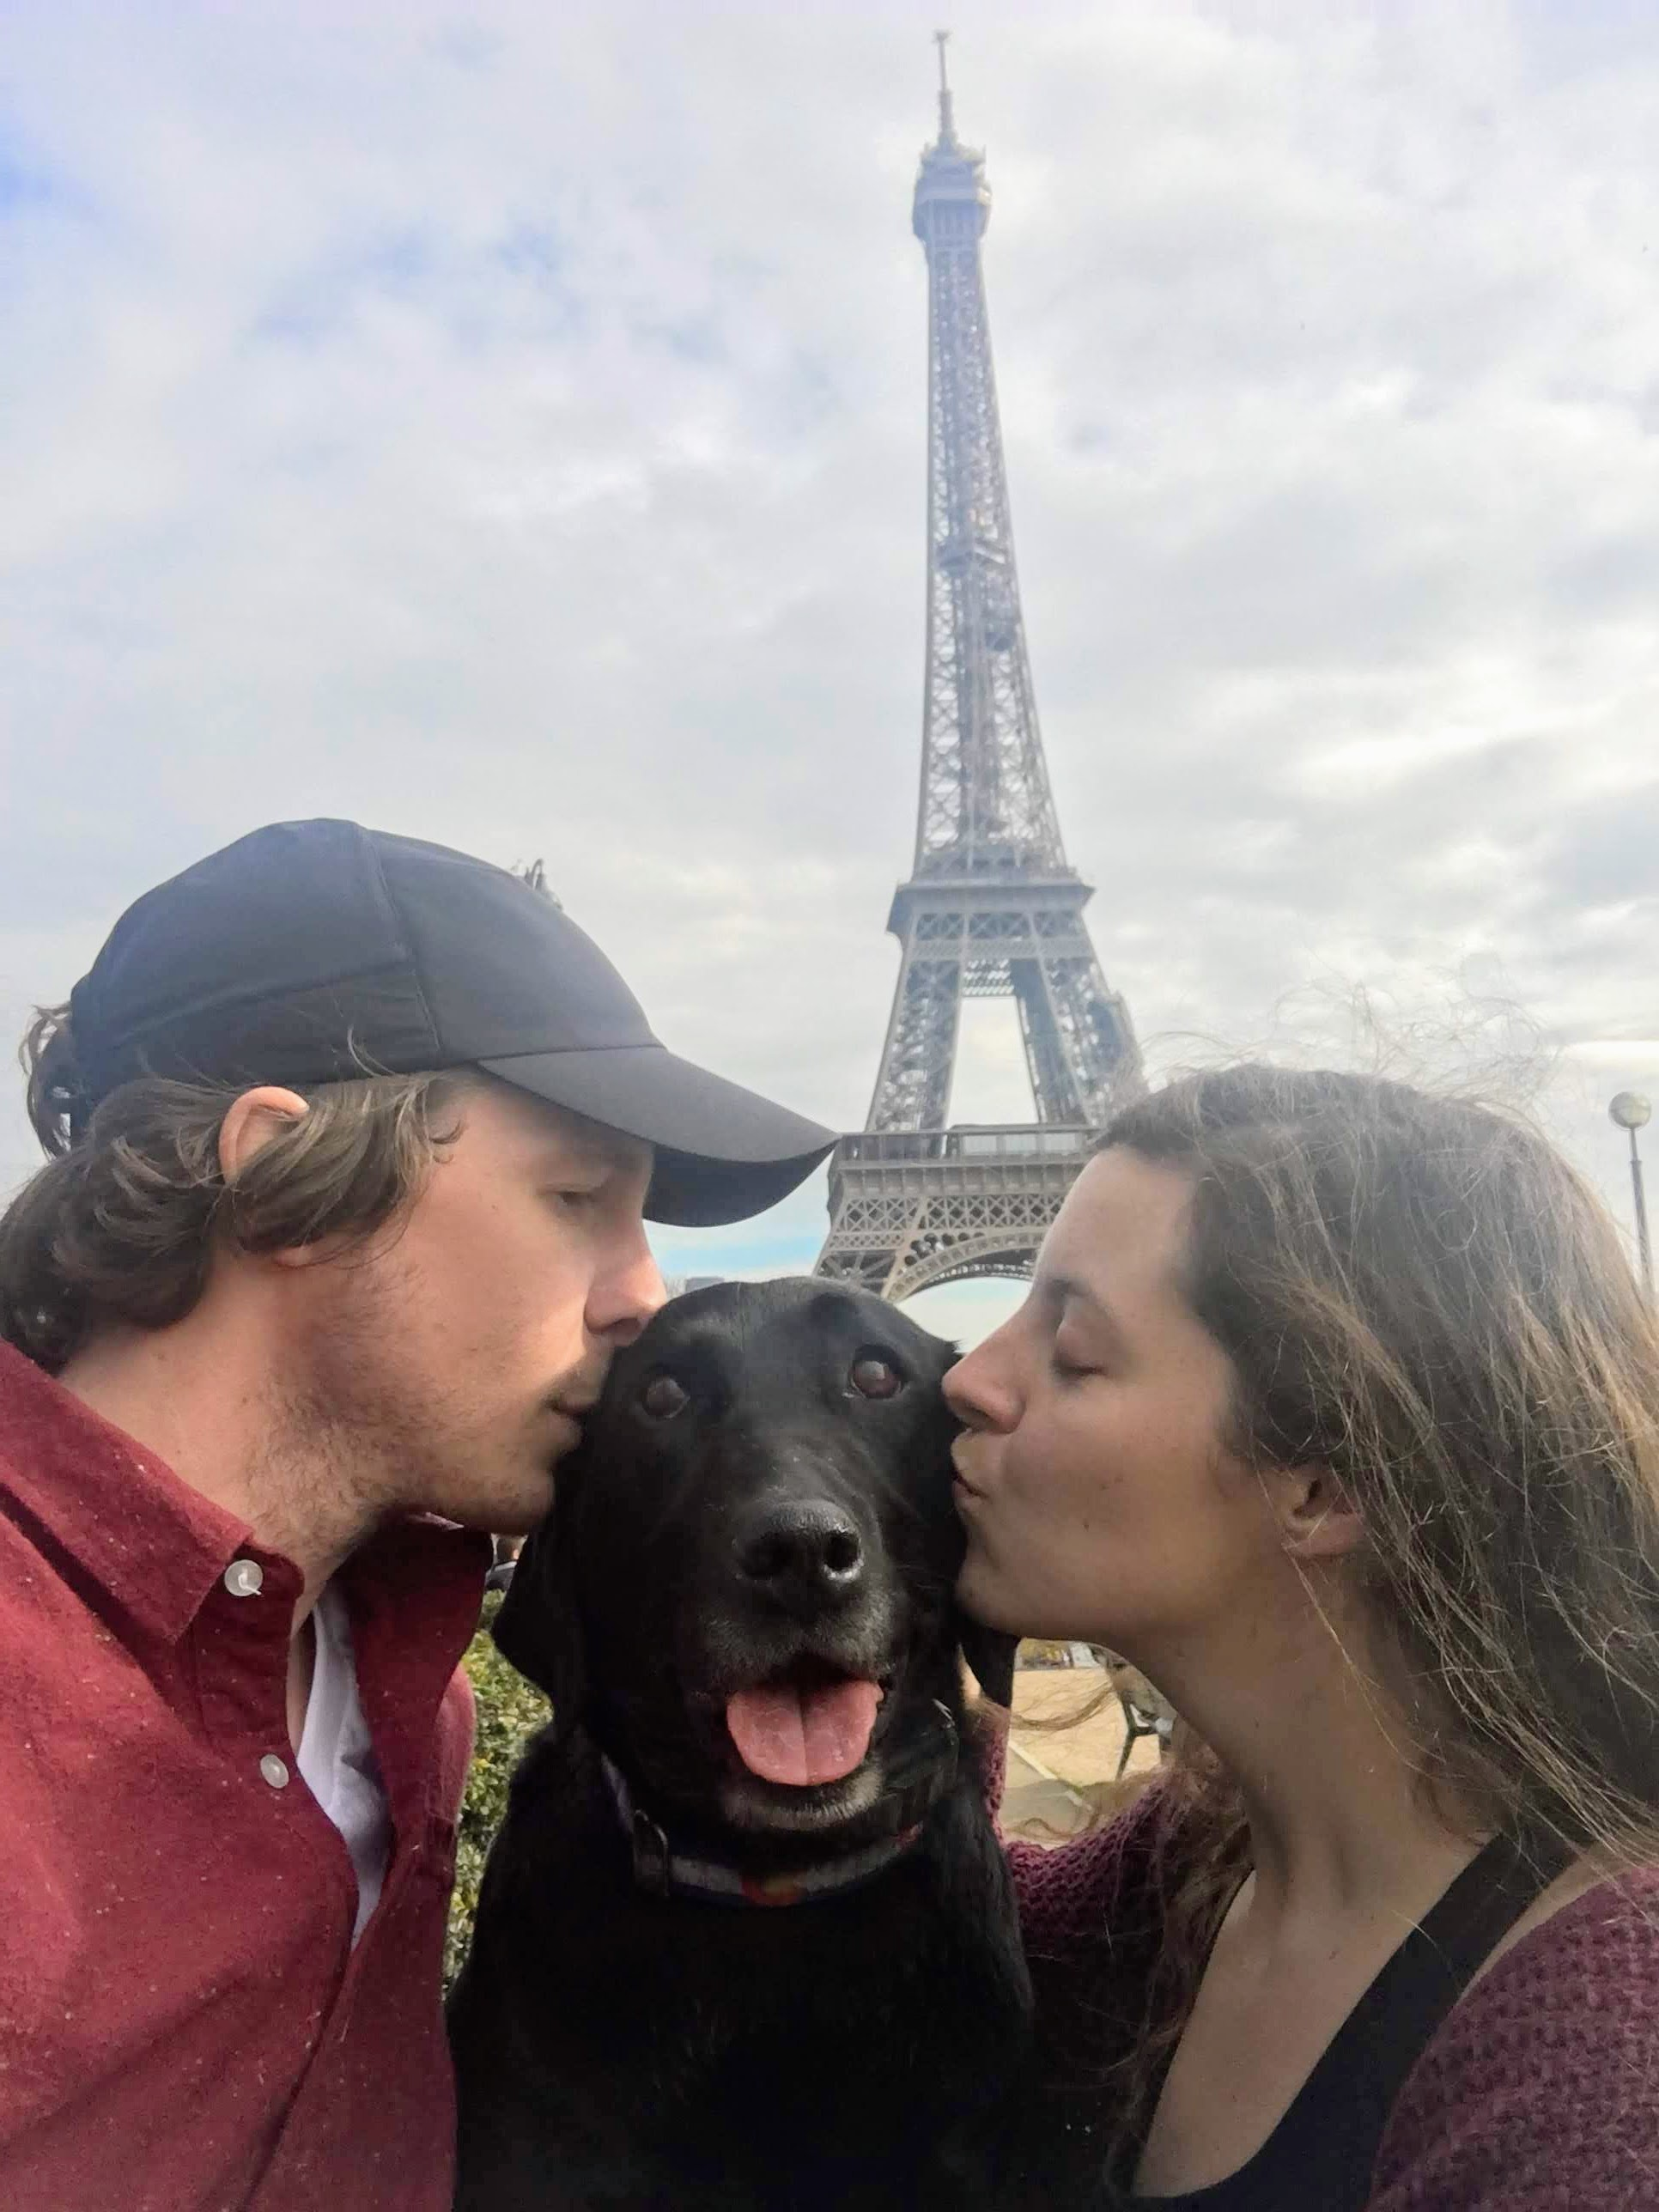 Martha Murphy - Currently living in Paris with a black labrador and mostly-well behaved boyfriend. Follow my dog on Instagram to see our European adventures.